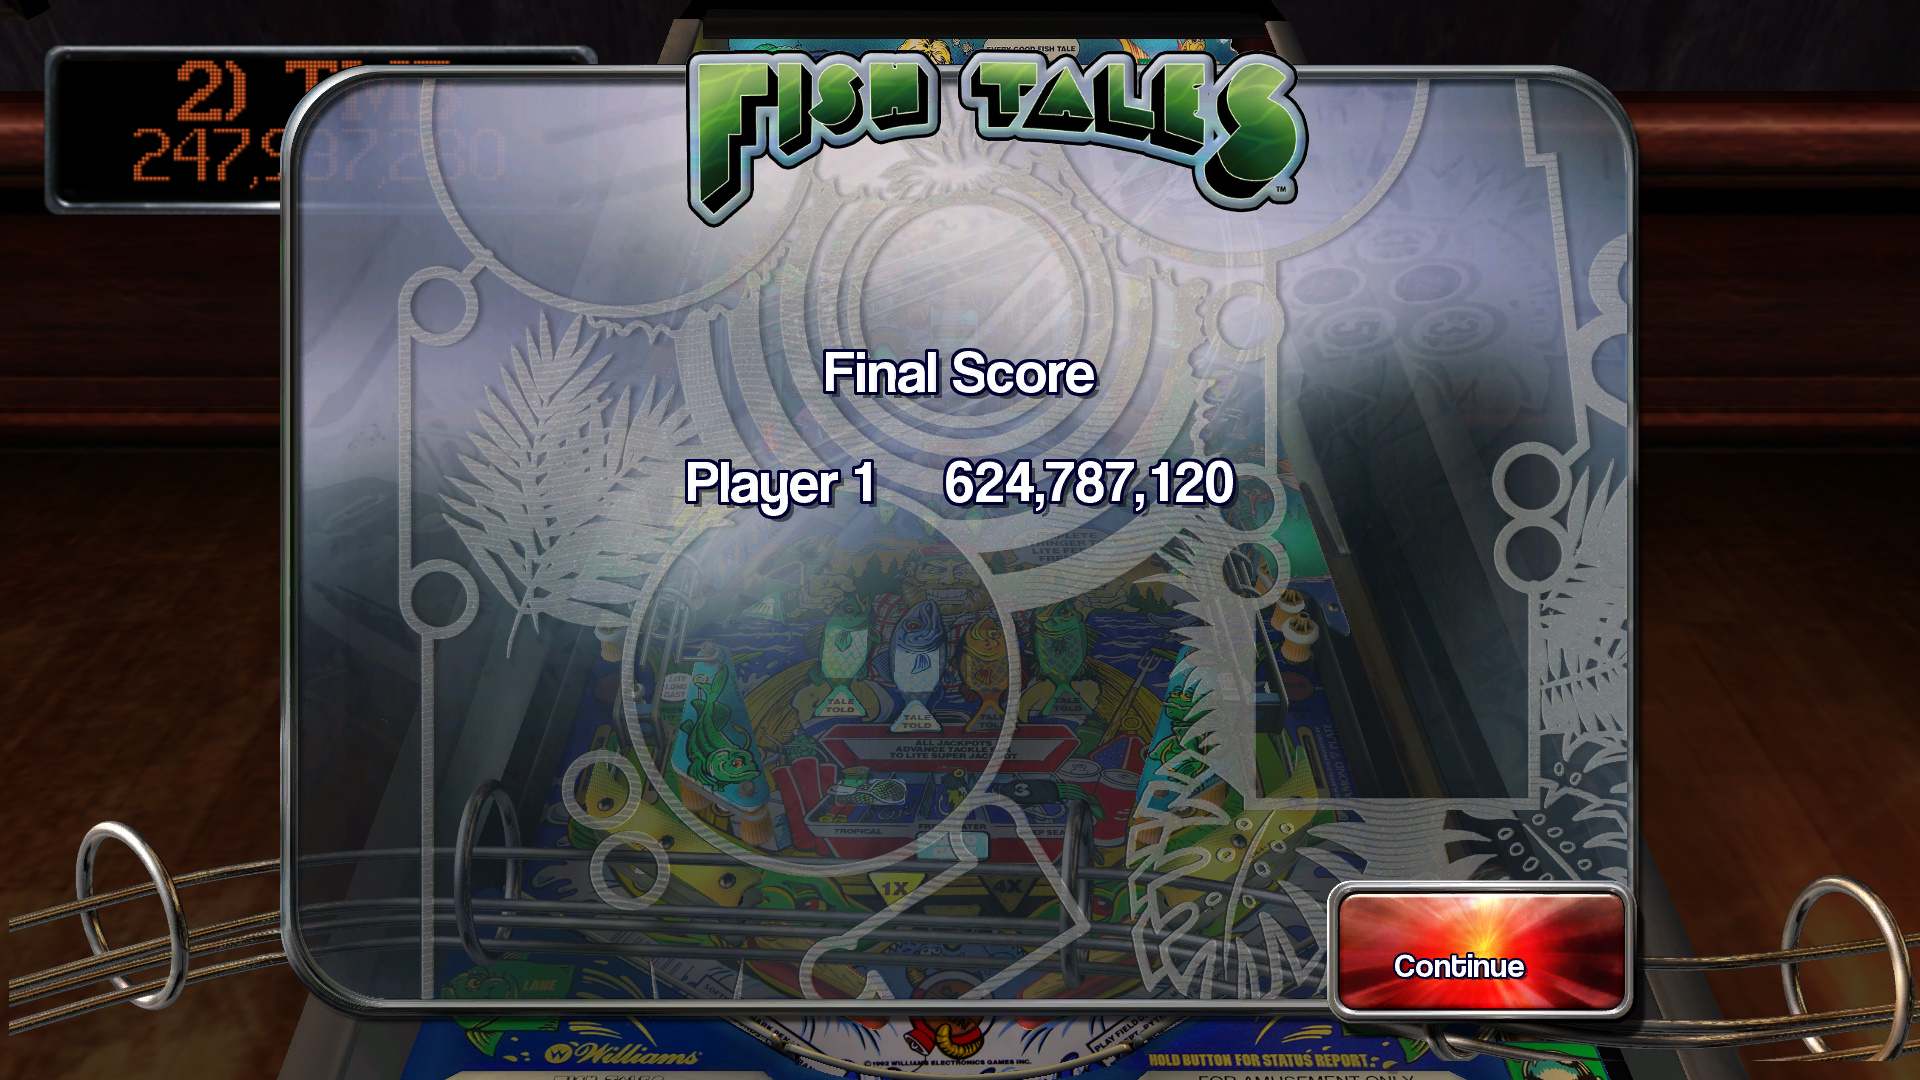 TheTrickster: Pinball Arcade: Fish Tales (PC) 624,787,120 points on 2015-11-01 05:36:59